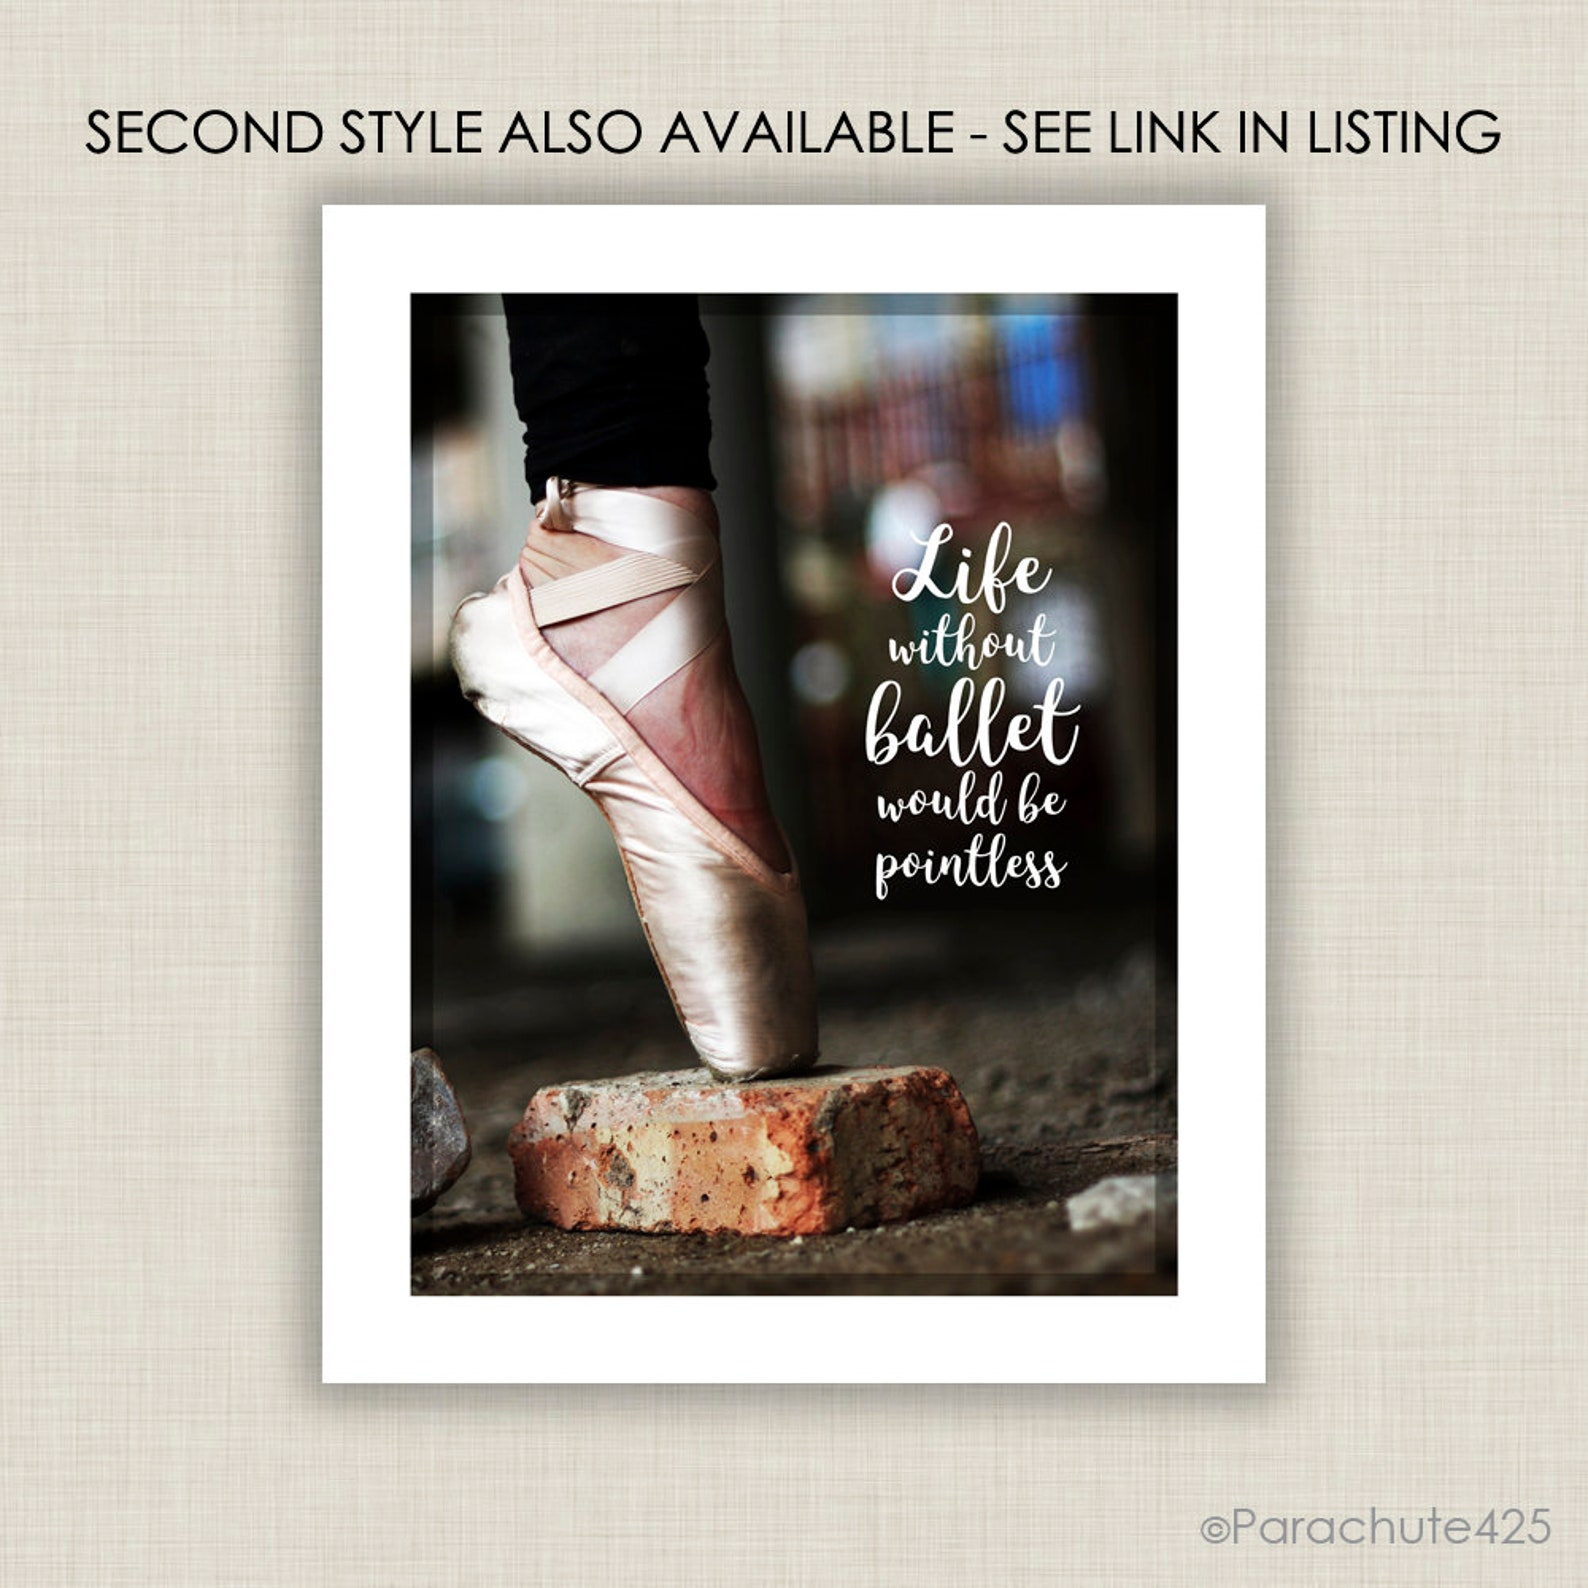 ballet wall art print, life without ballet would be pointless, black ballerinas with quote for ballet decor or gift